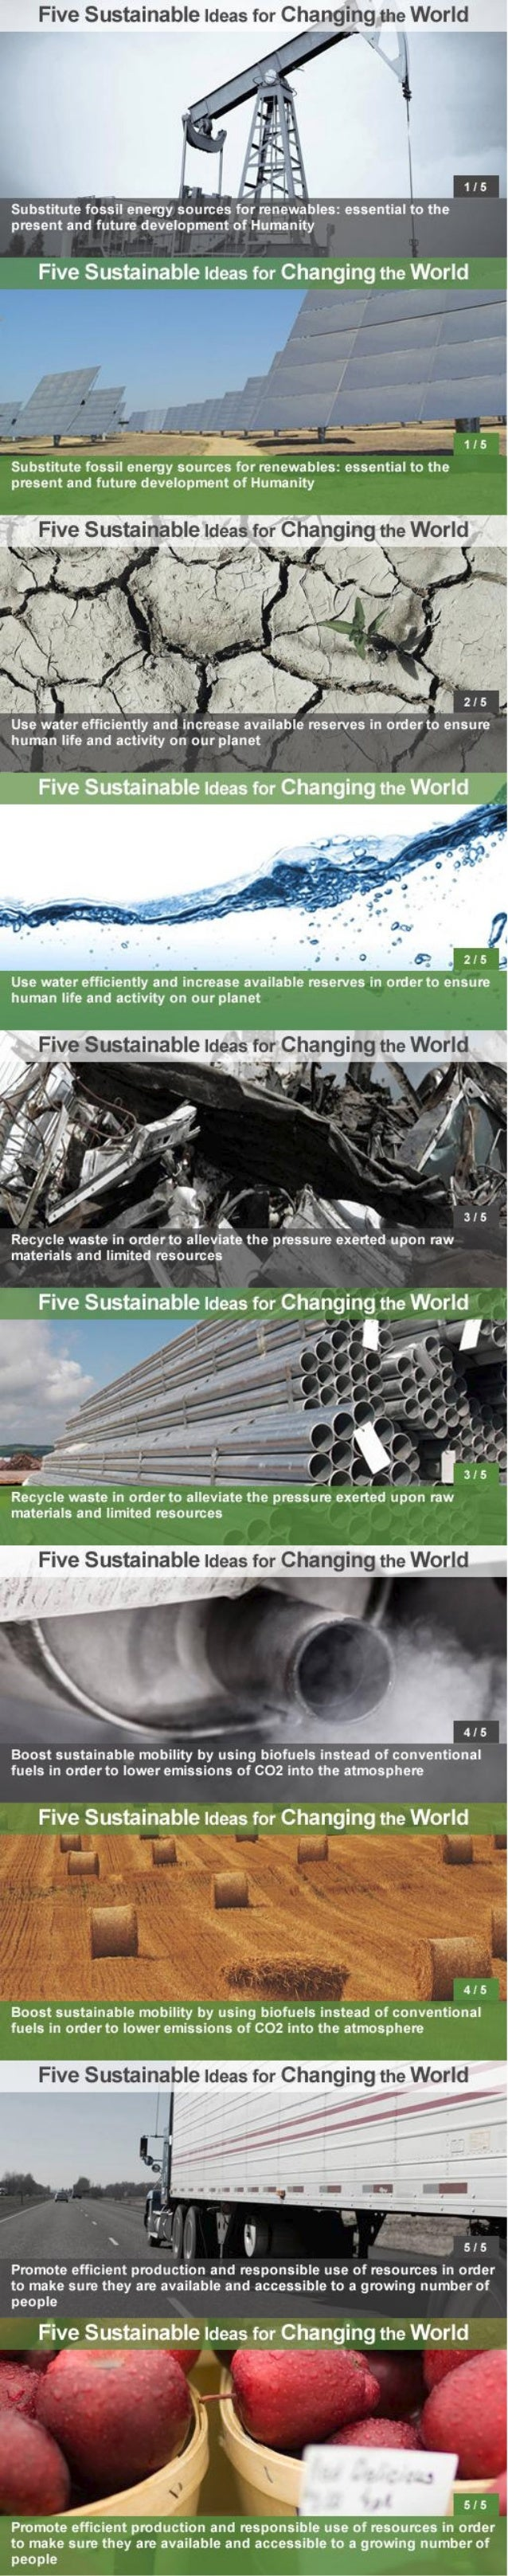 Abengoa 5 ideas for a more sustainable world